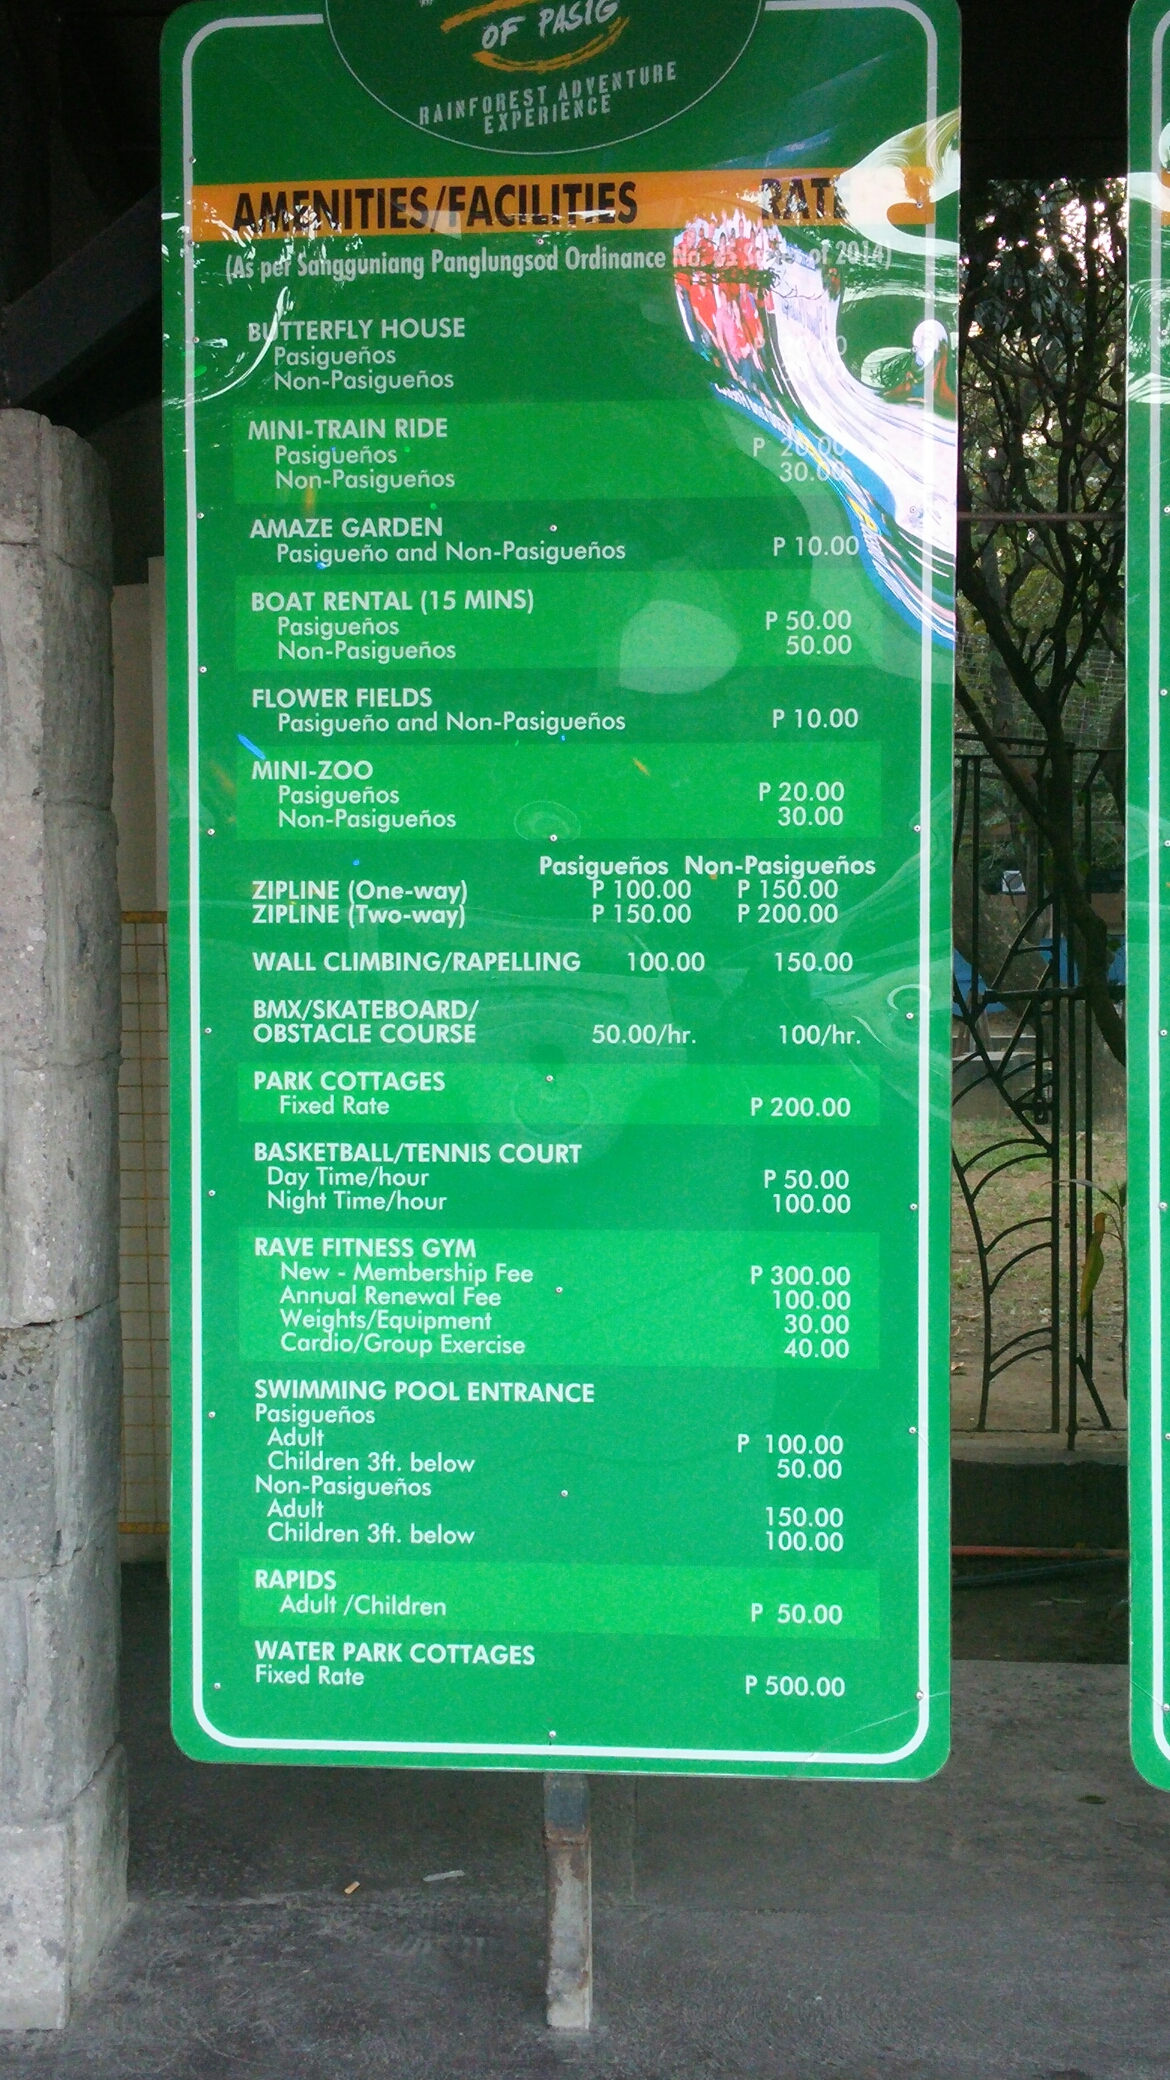 Rainforest-pasig-amenities-rates-prices.jpg